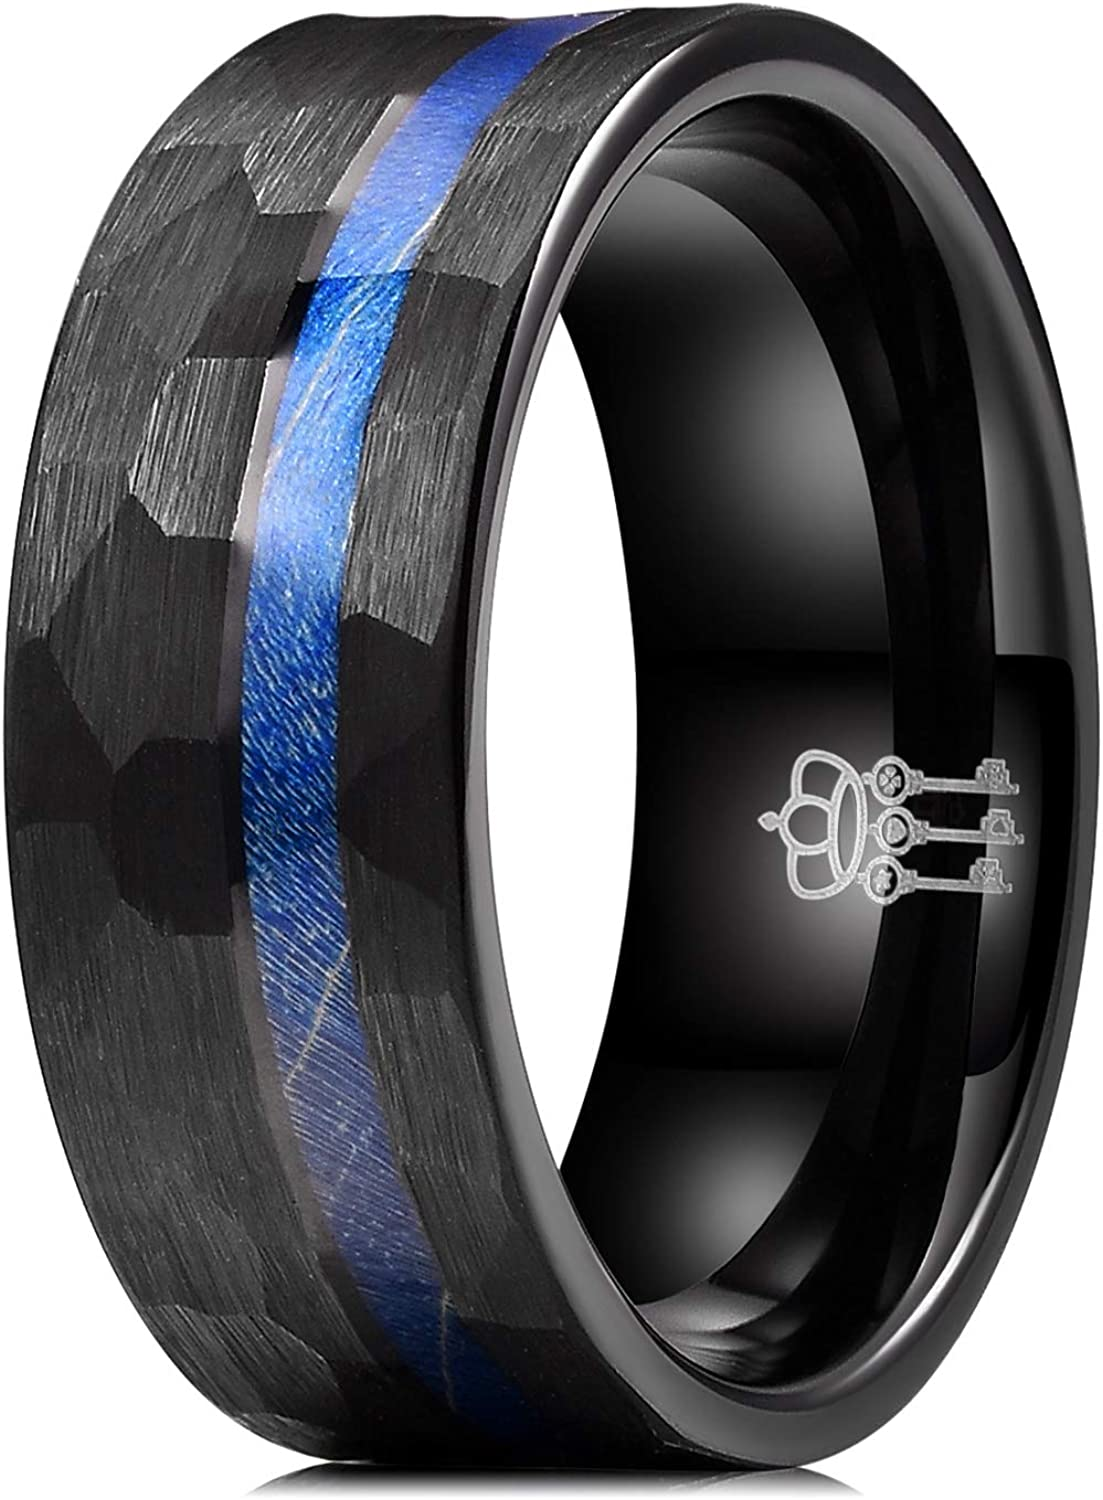 THREE KEYS JEWELRY 8mm Mens Black Silver Hammered Tungsten Ring with Blue Dyed Wood Infinity Unique Burshed Wedding Bands